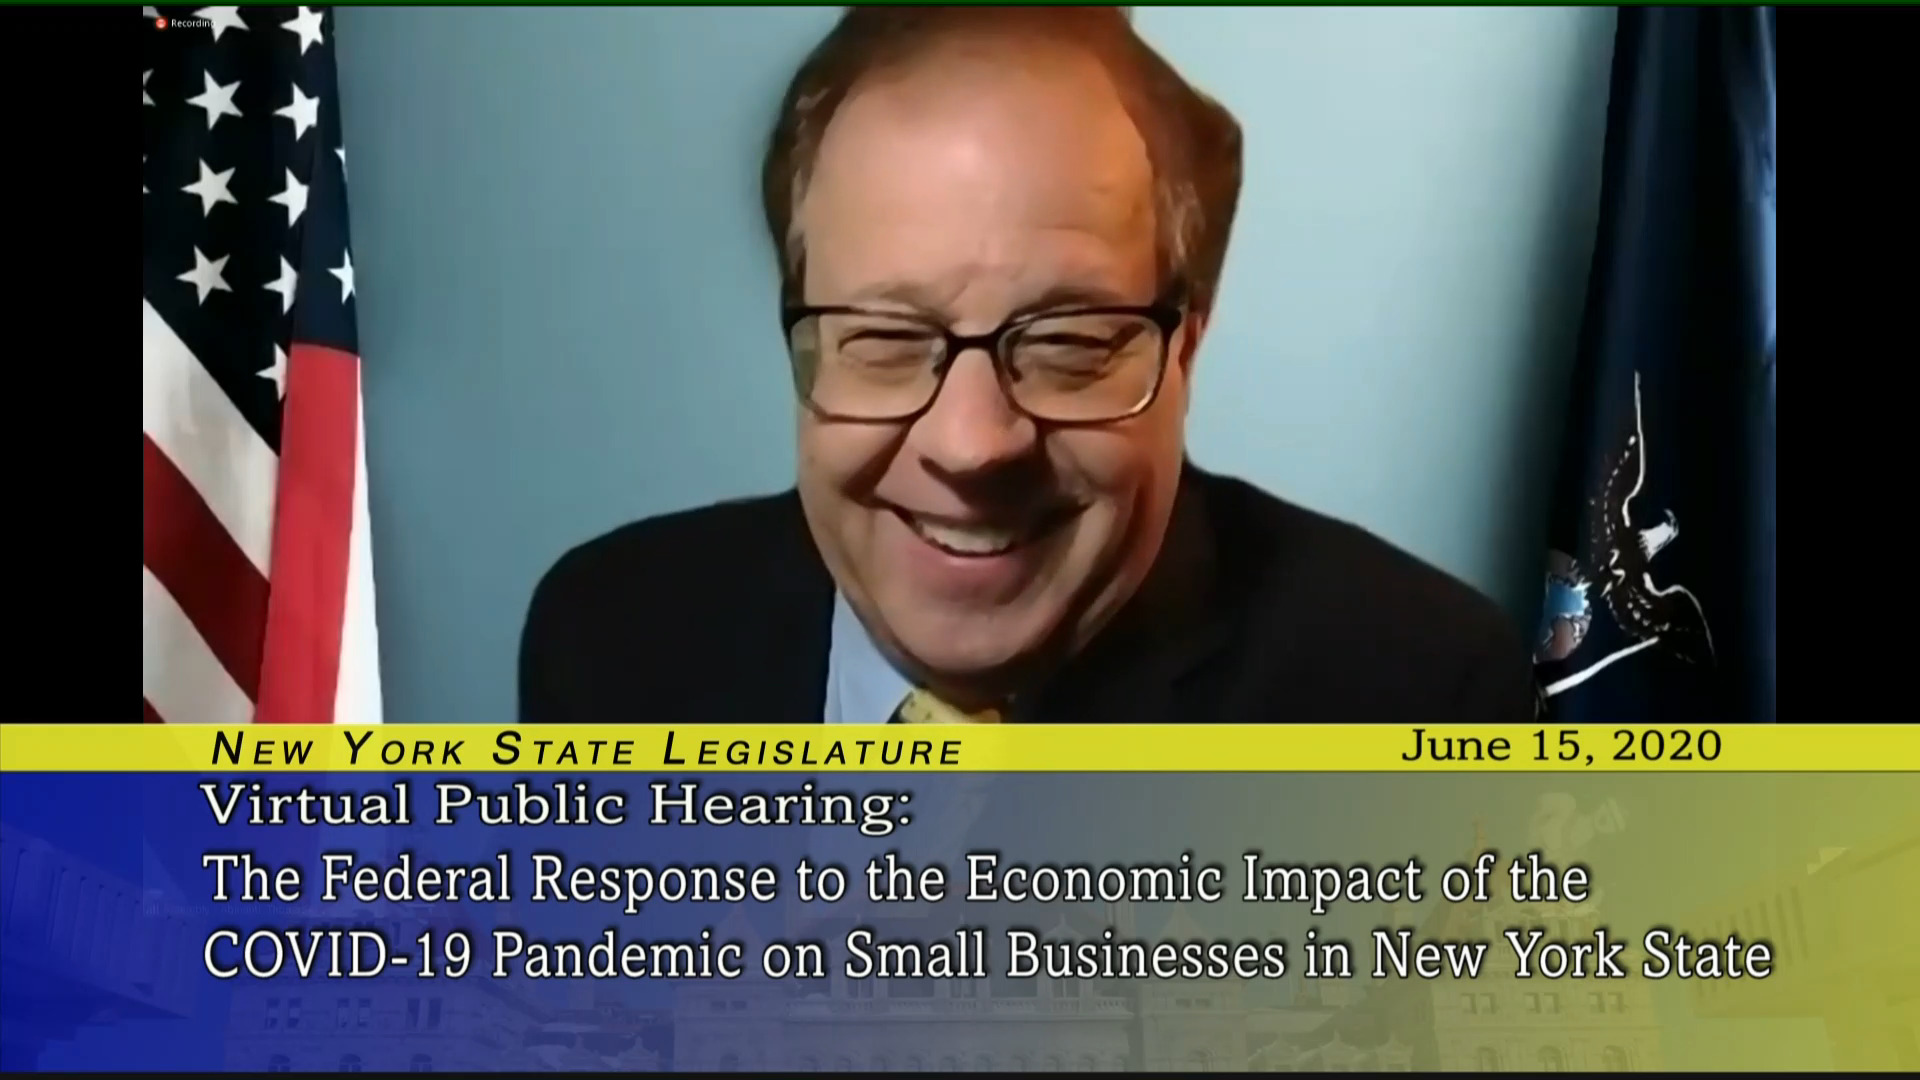 Public Hearing on Federal Response to COVID-19 Impact on Small Business